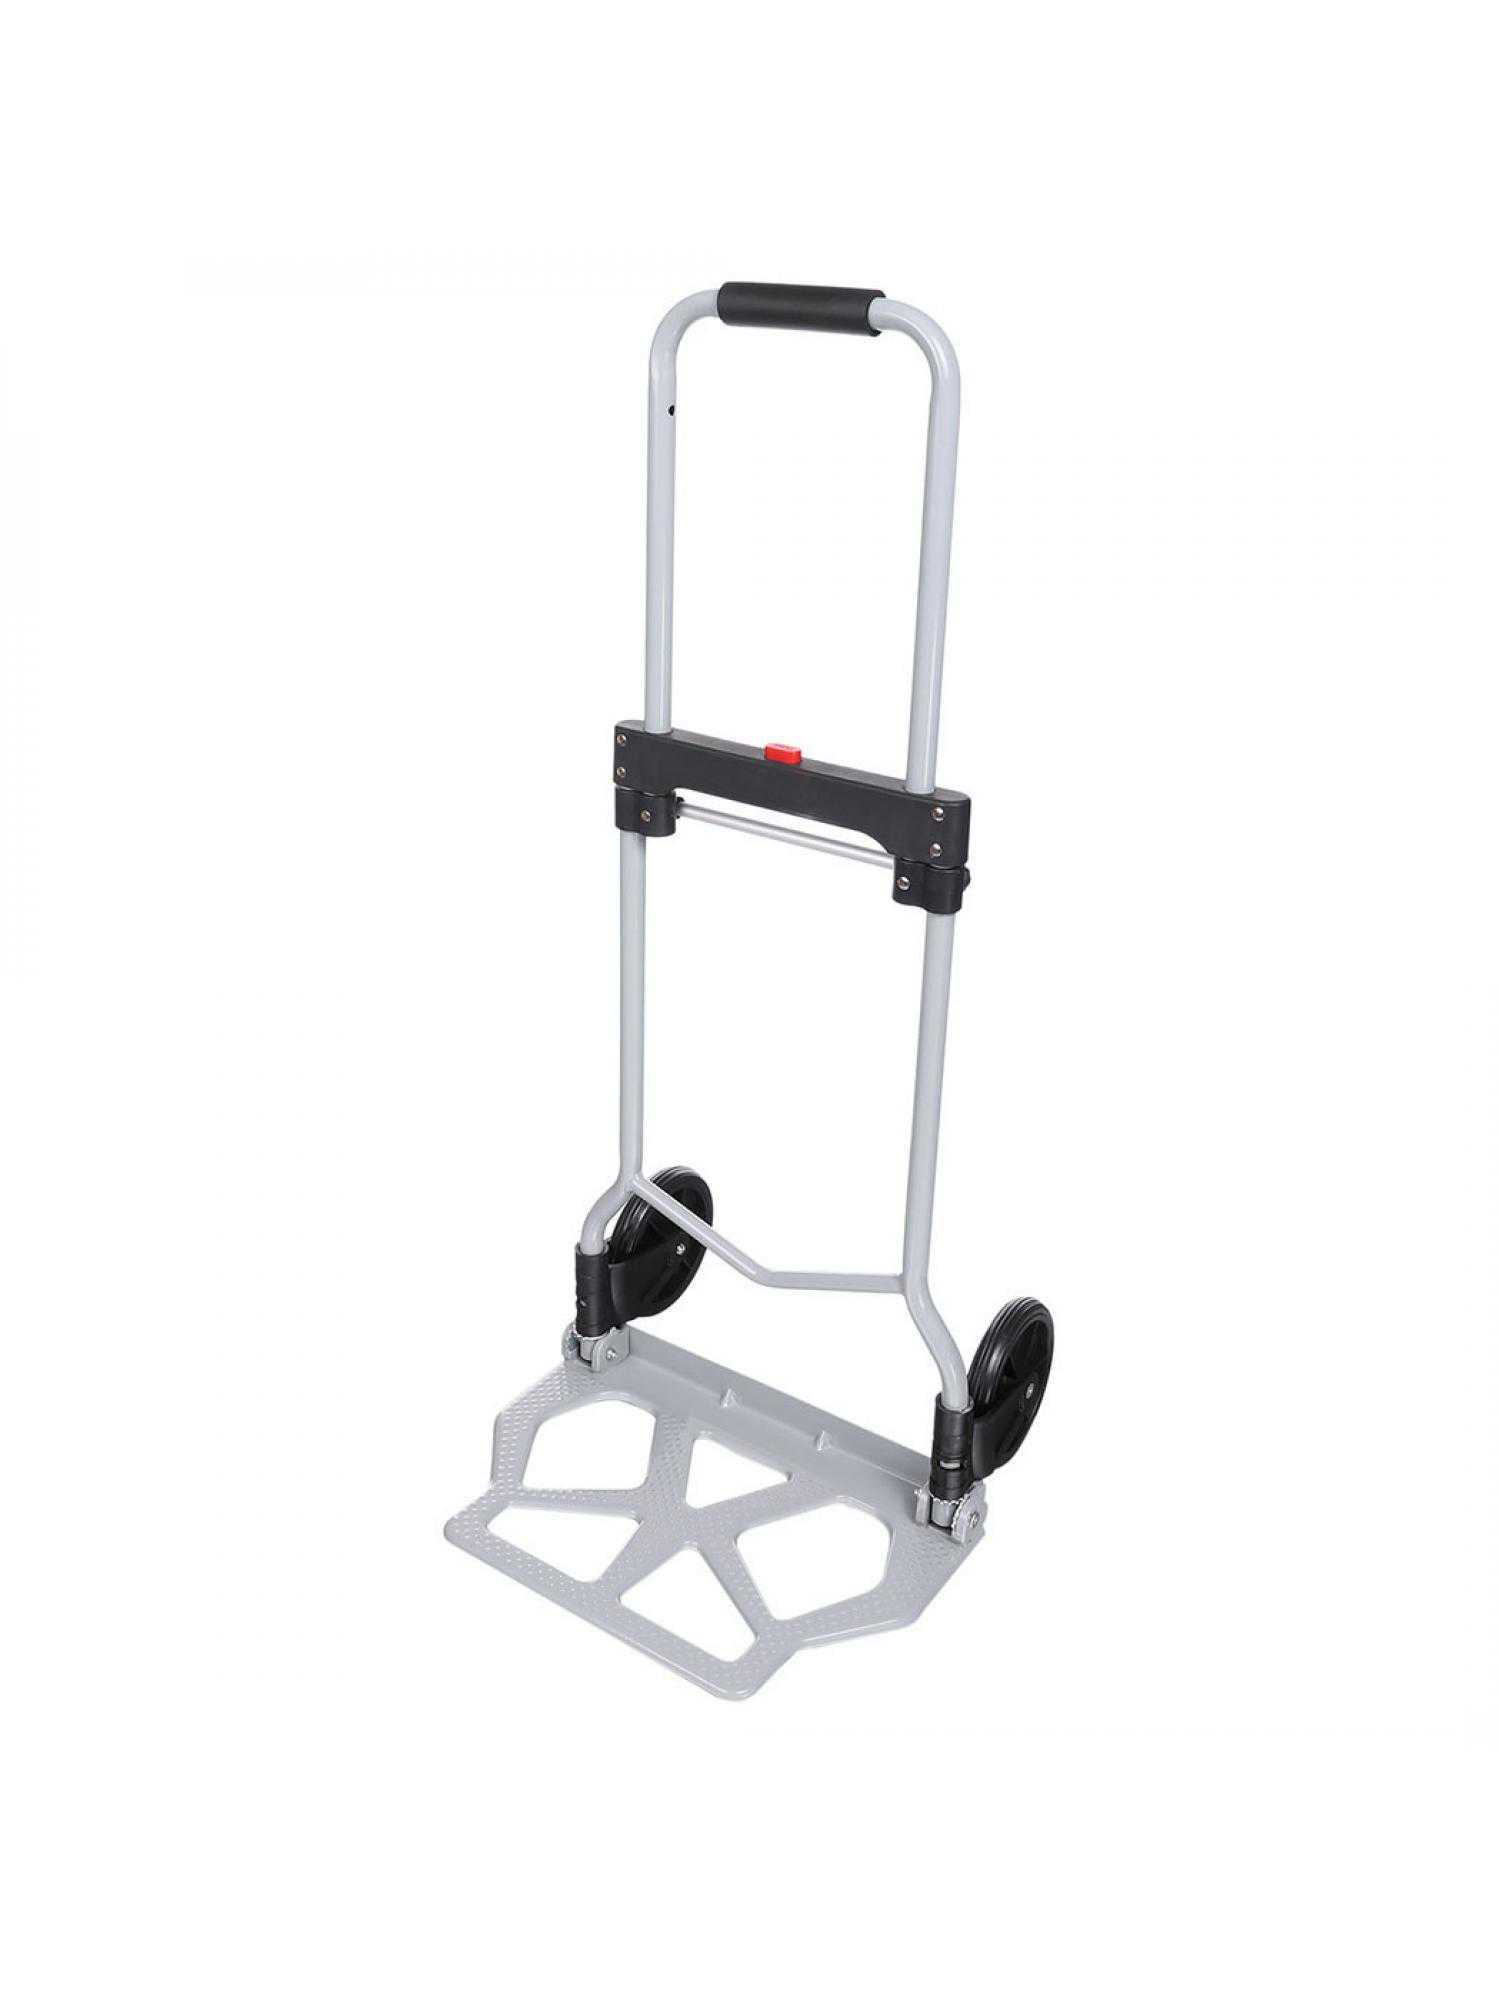 Heavy Duty Industrial Cargo handling/Travel/Shopping Hand Truck Cart Folding Luggage cart 220lbs Yallstore